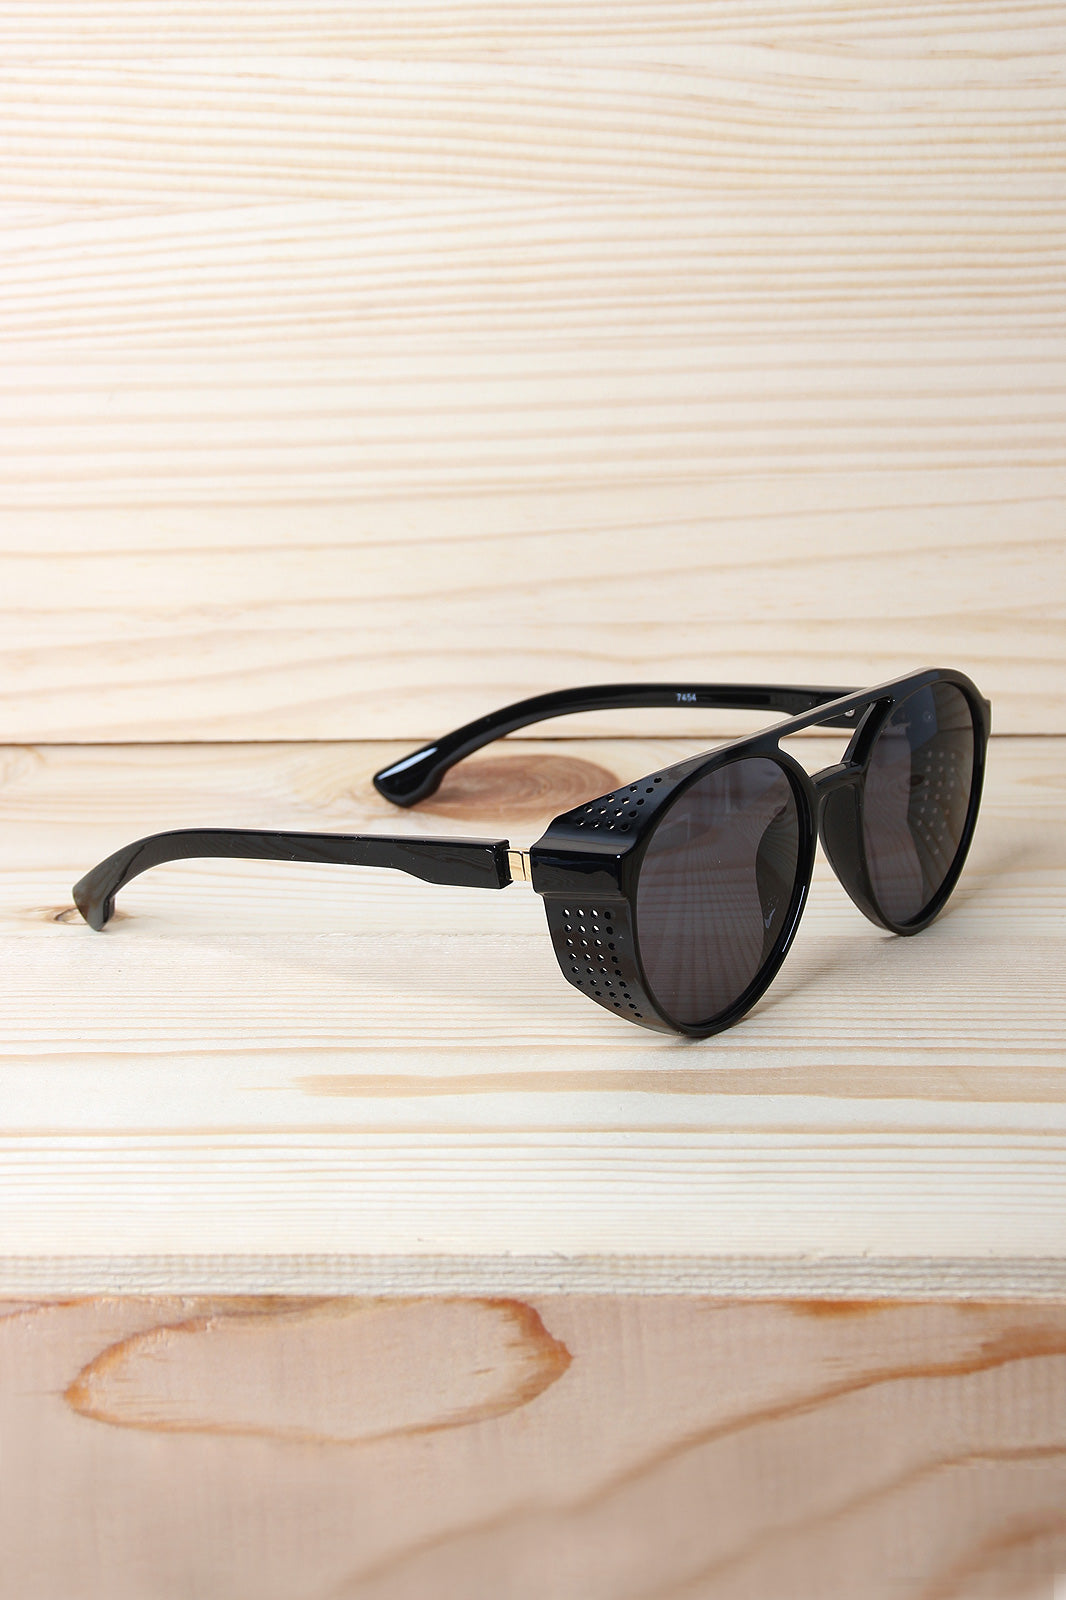 Bar Brow Brim Frame Sunglasses